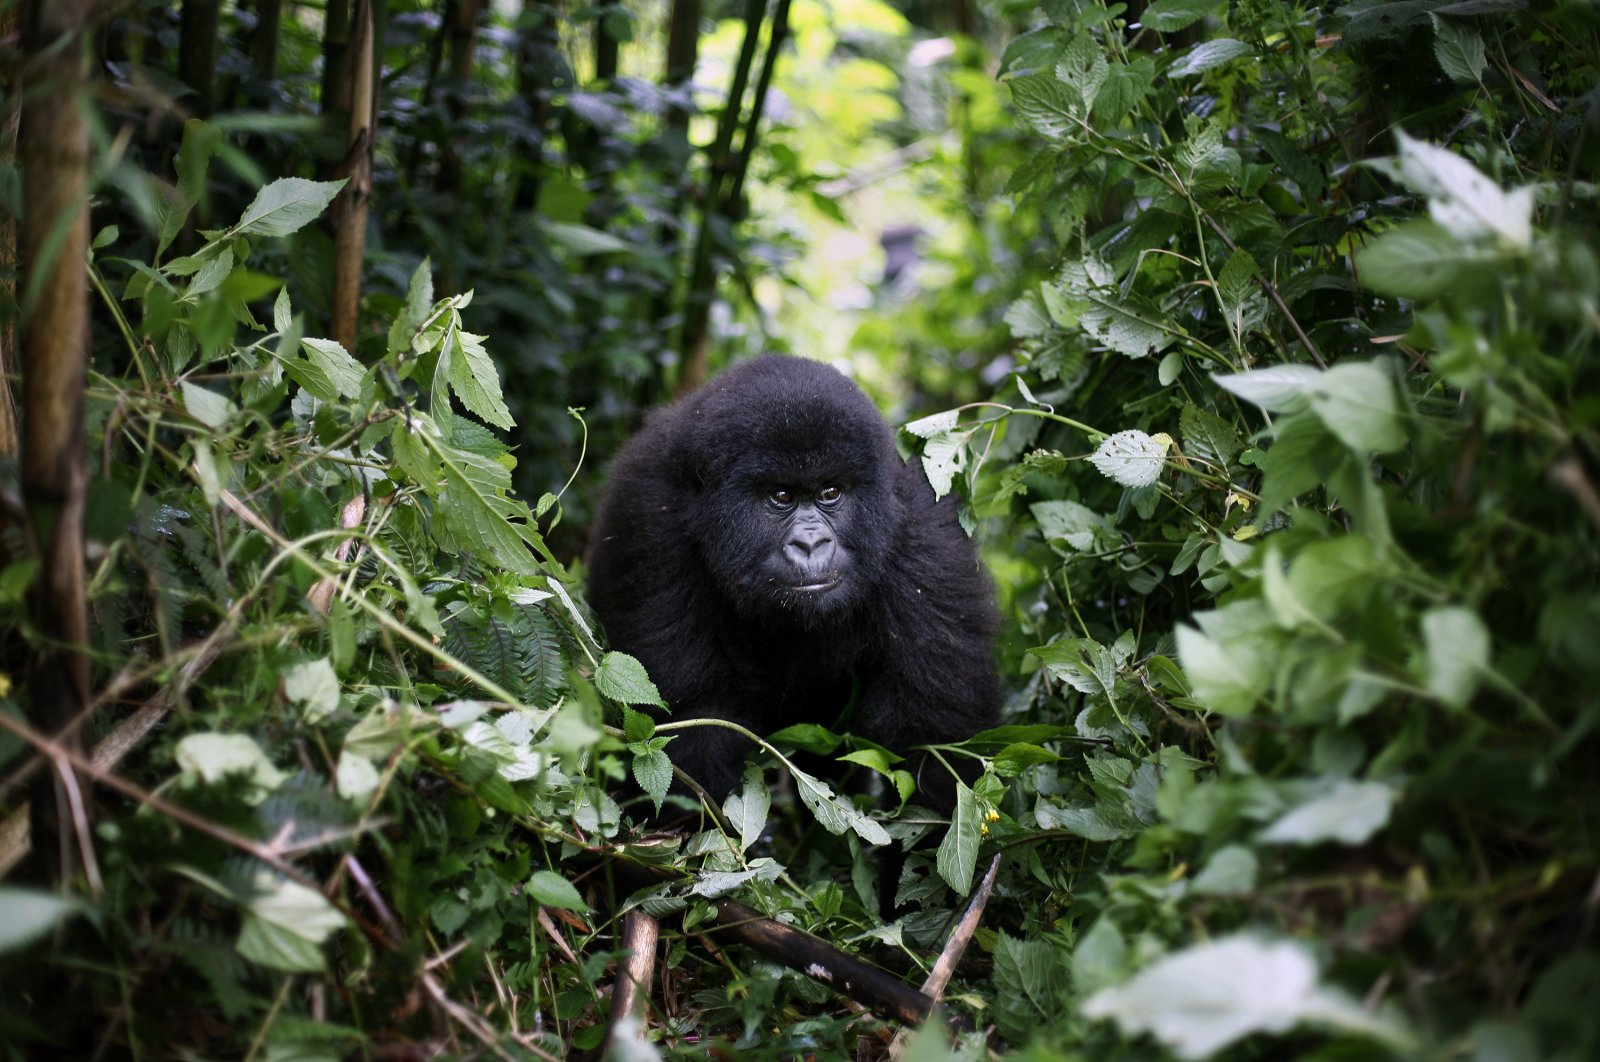 In this photo taken Dec. 11 2012, a young mountain gorilla is seen in the Virunga National Park in eastern Congo. (AP Photo)